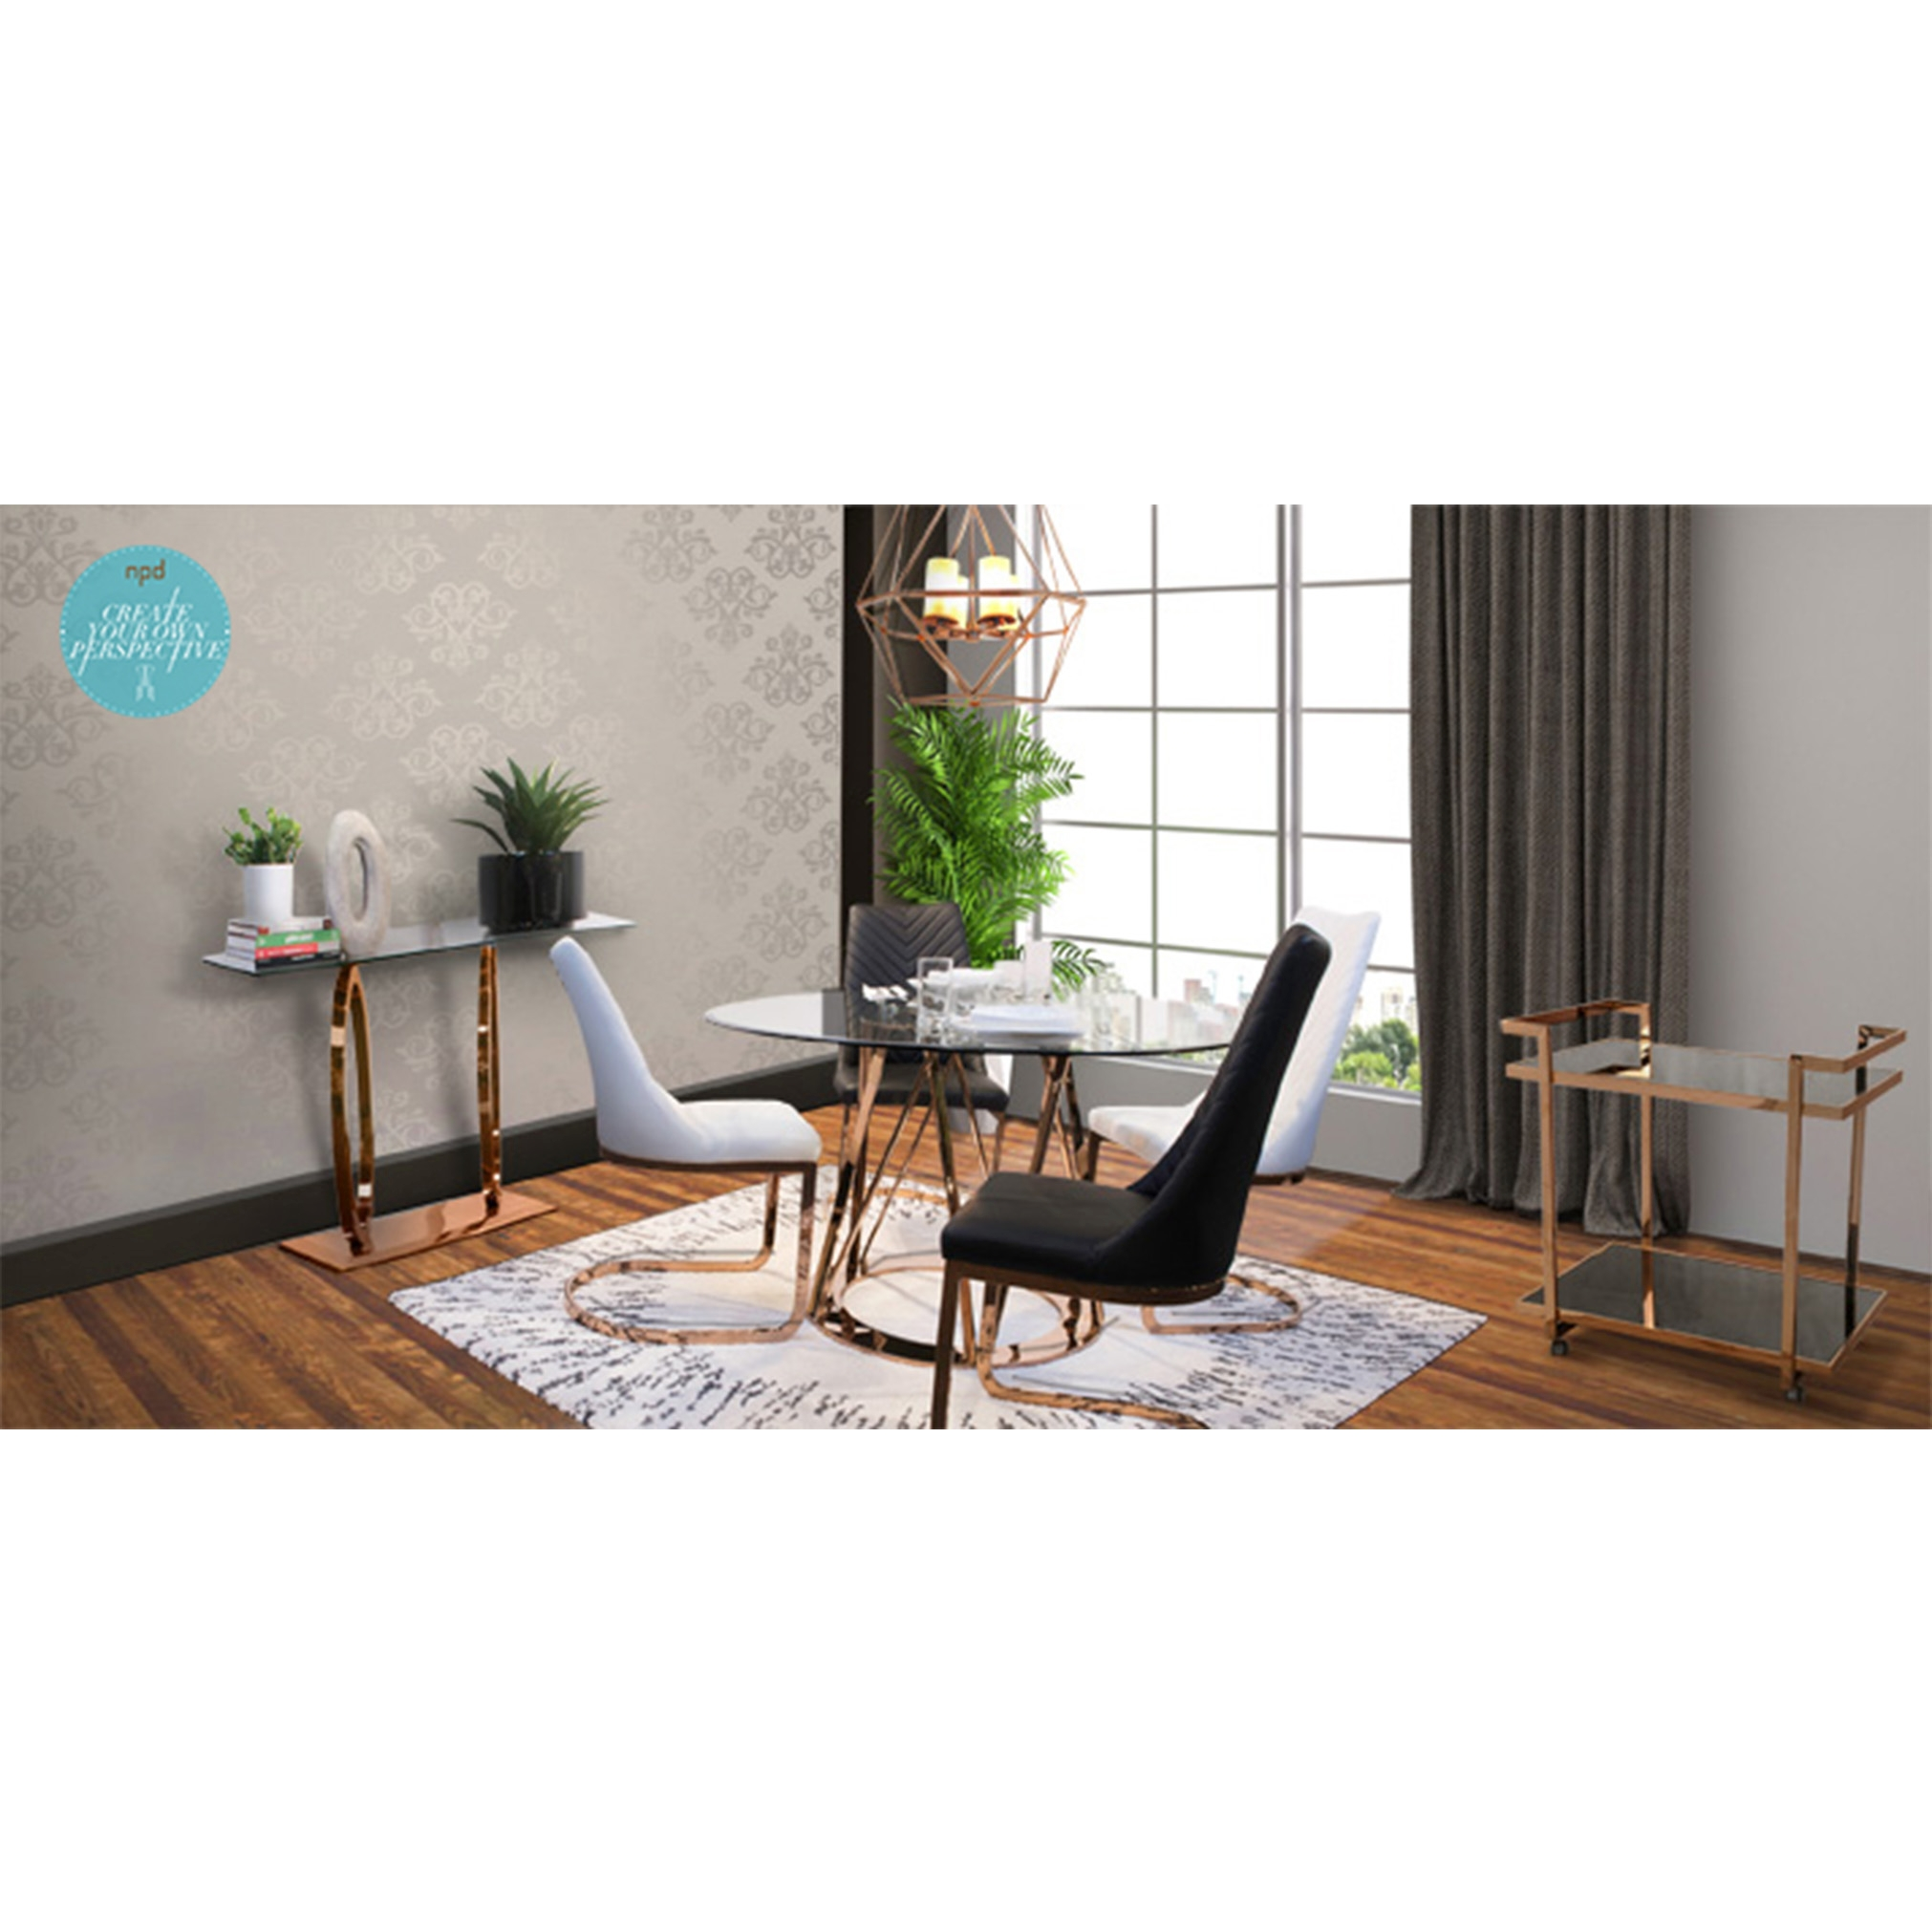 3000001 W Npd Home Furniture Wholesale Lifestyle